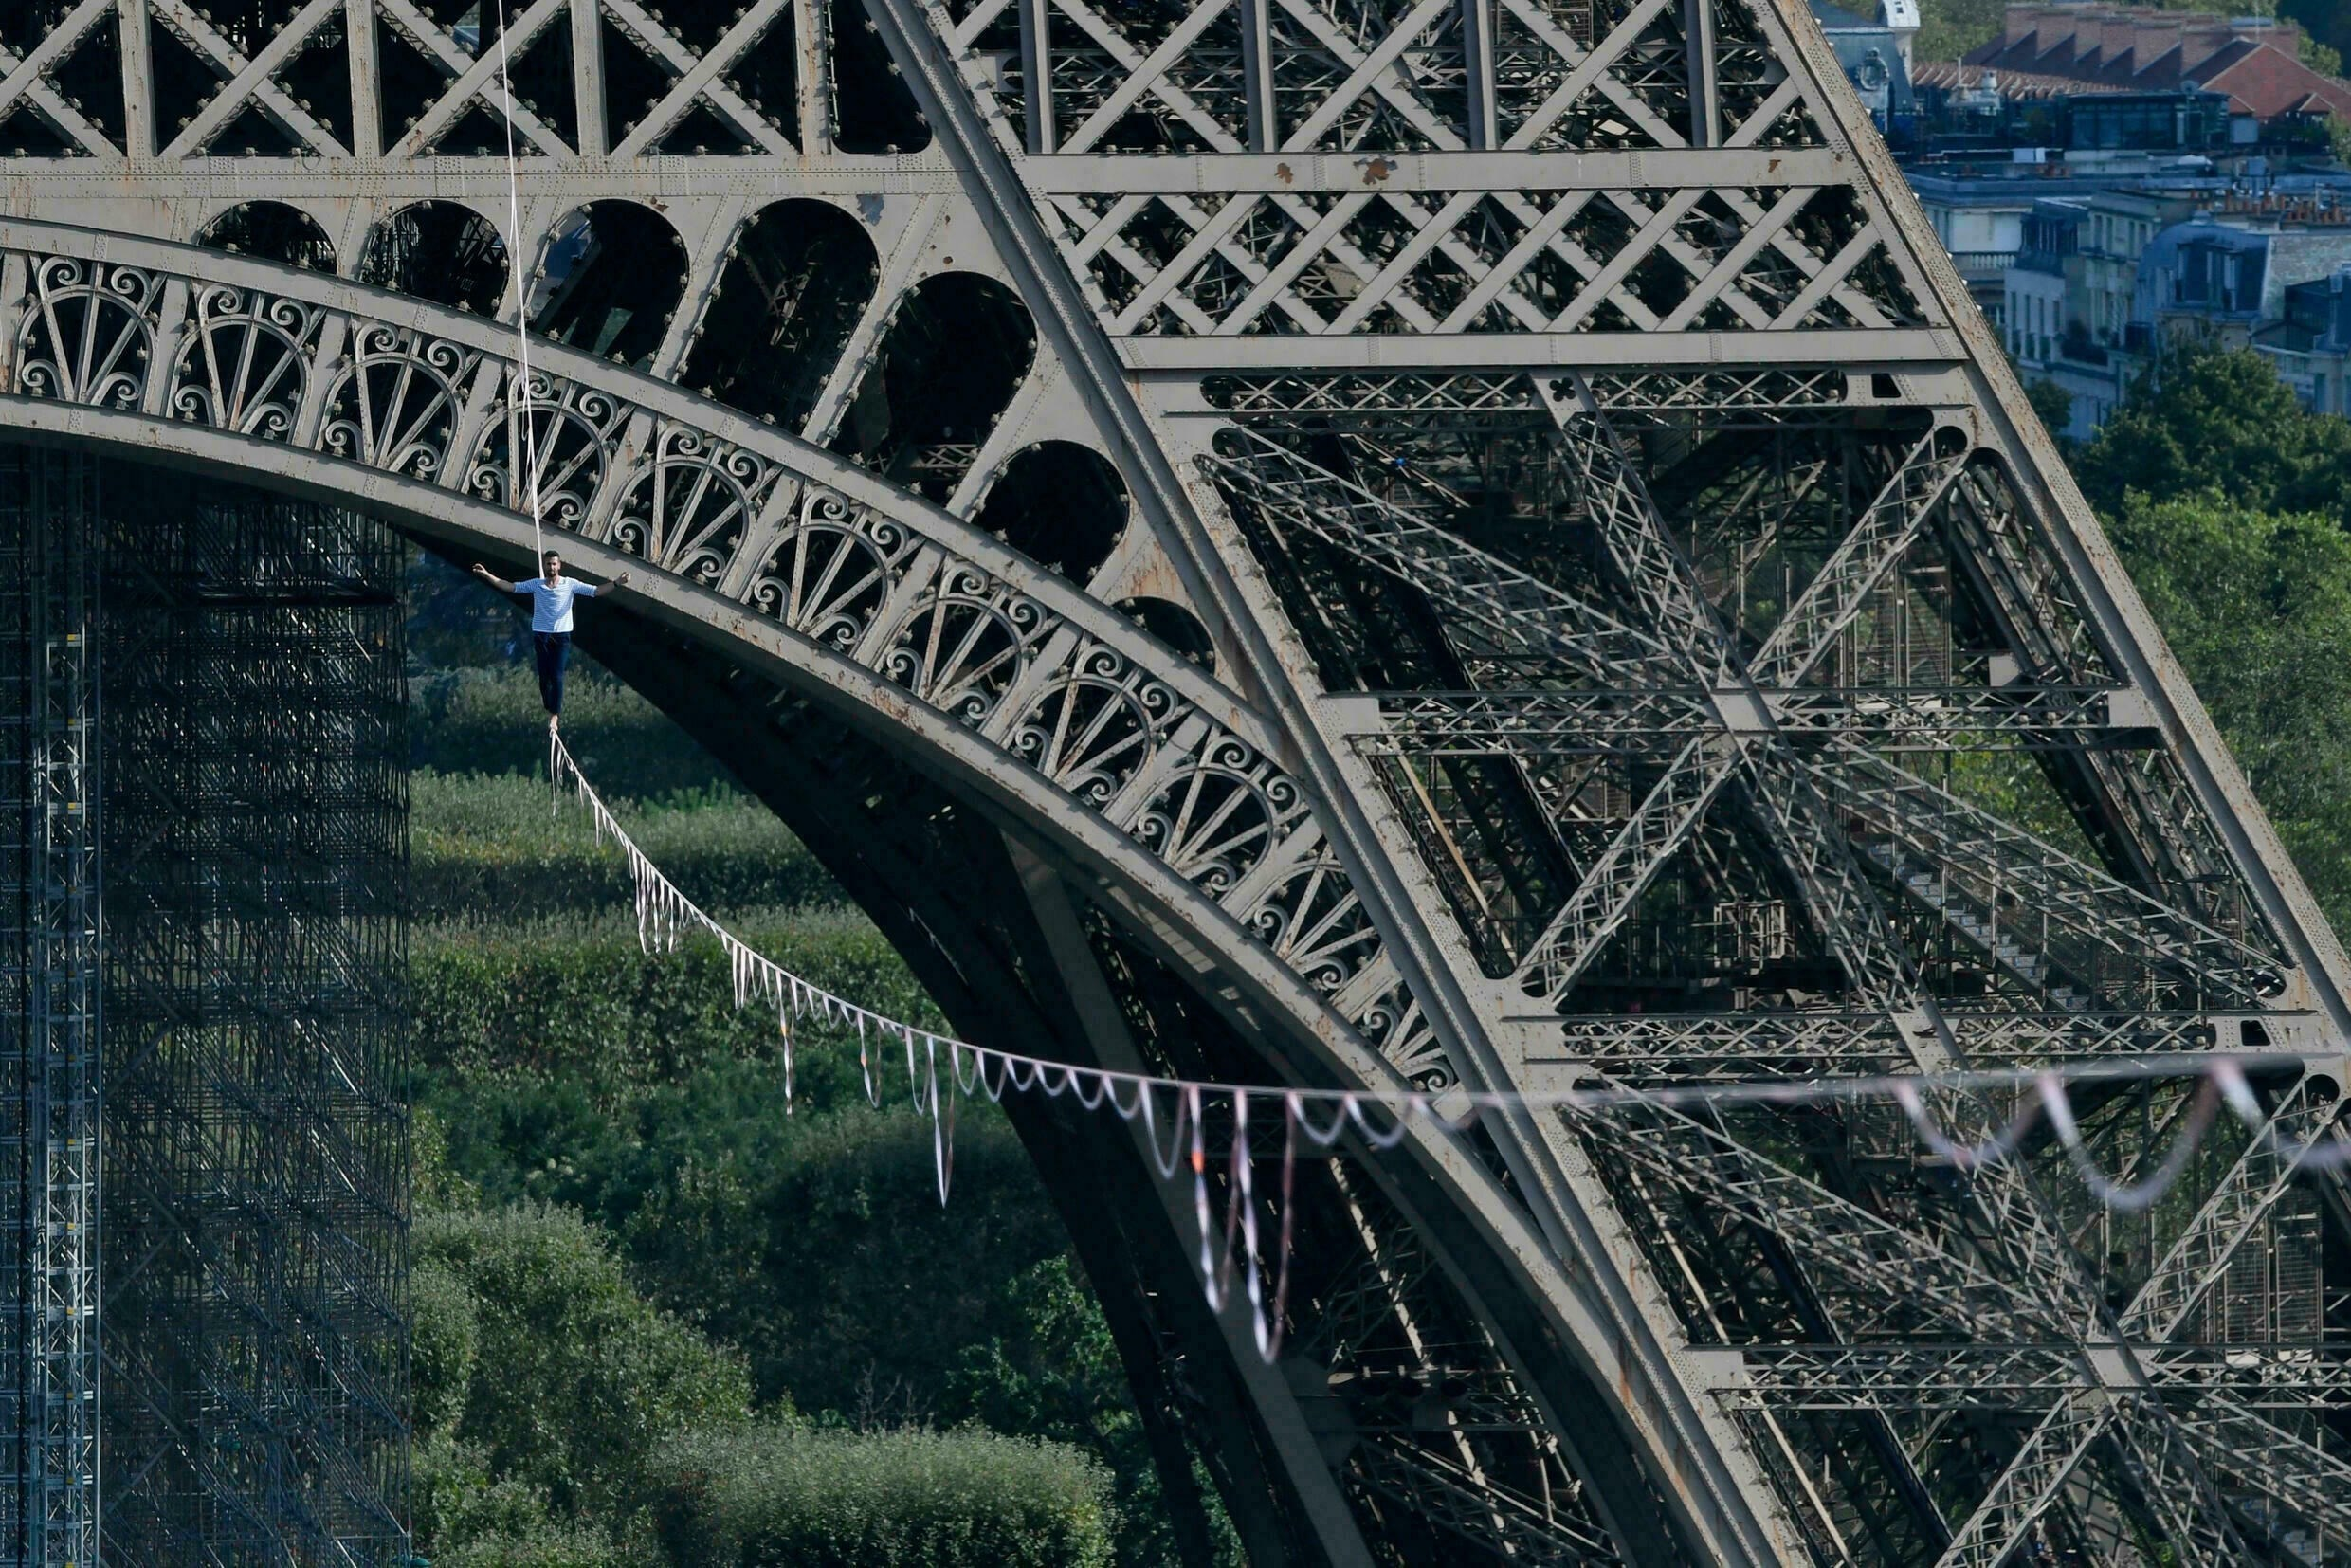 The French adventurer walked a distance of 670 meters on a rope at a height of 70 meters from the Eiffel Tower to the Chaillot National Theater.